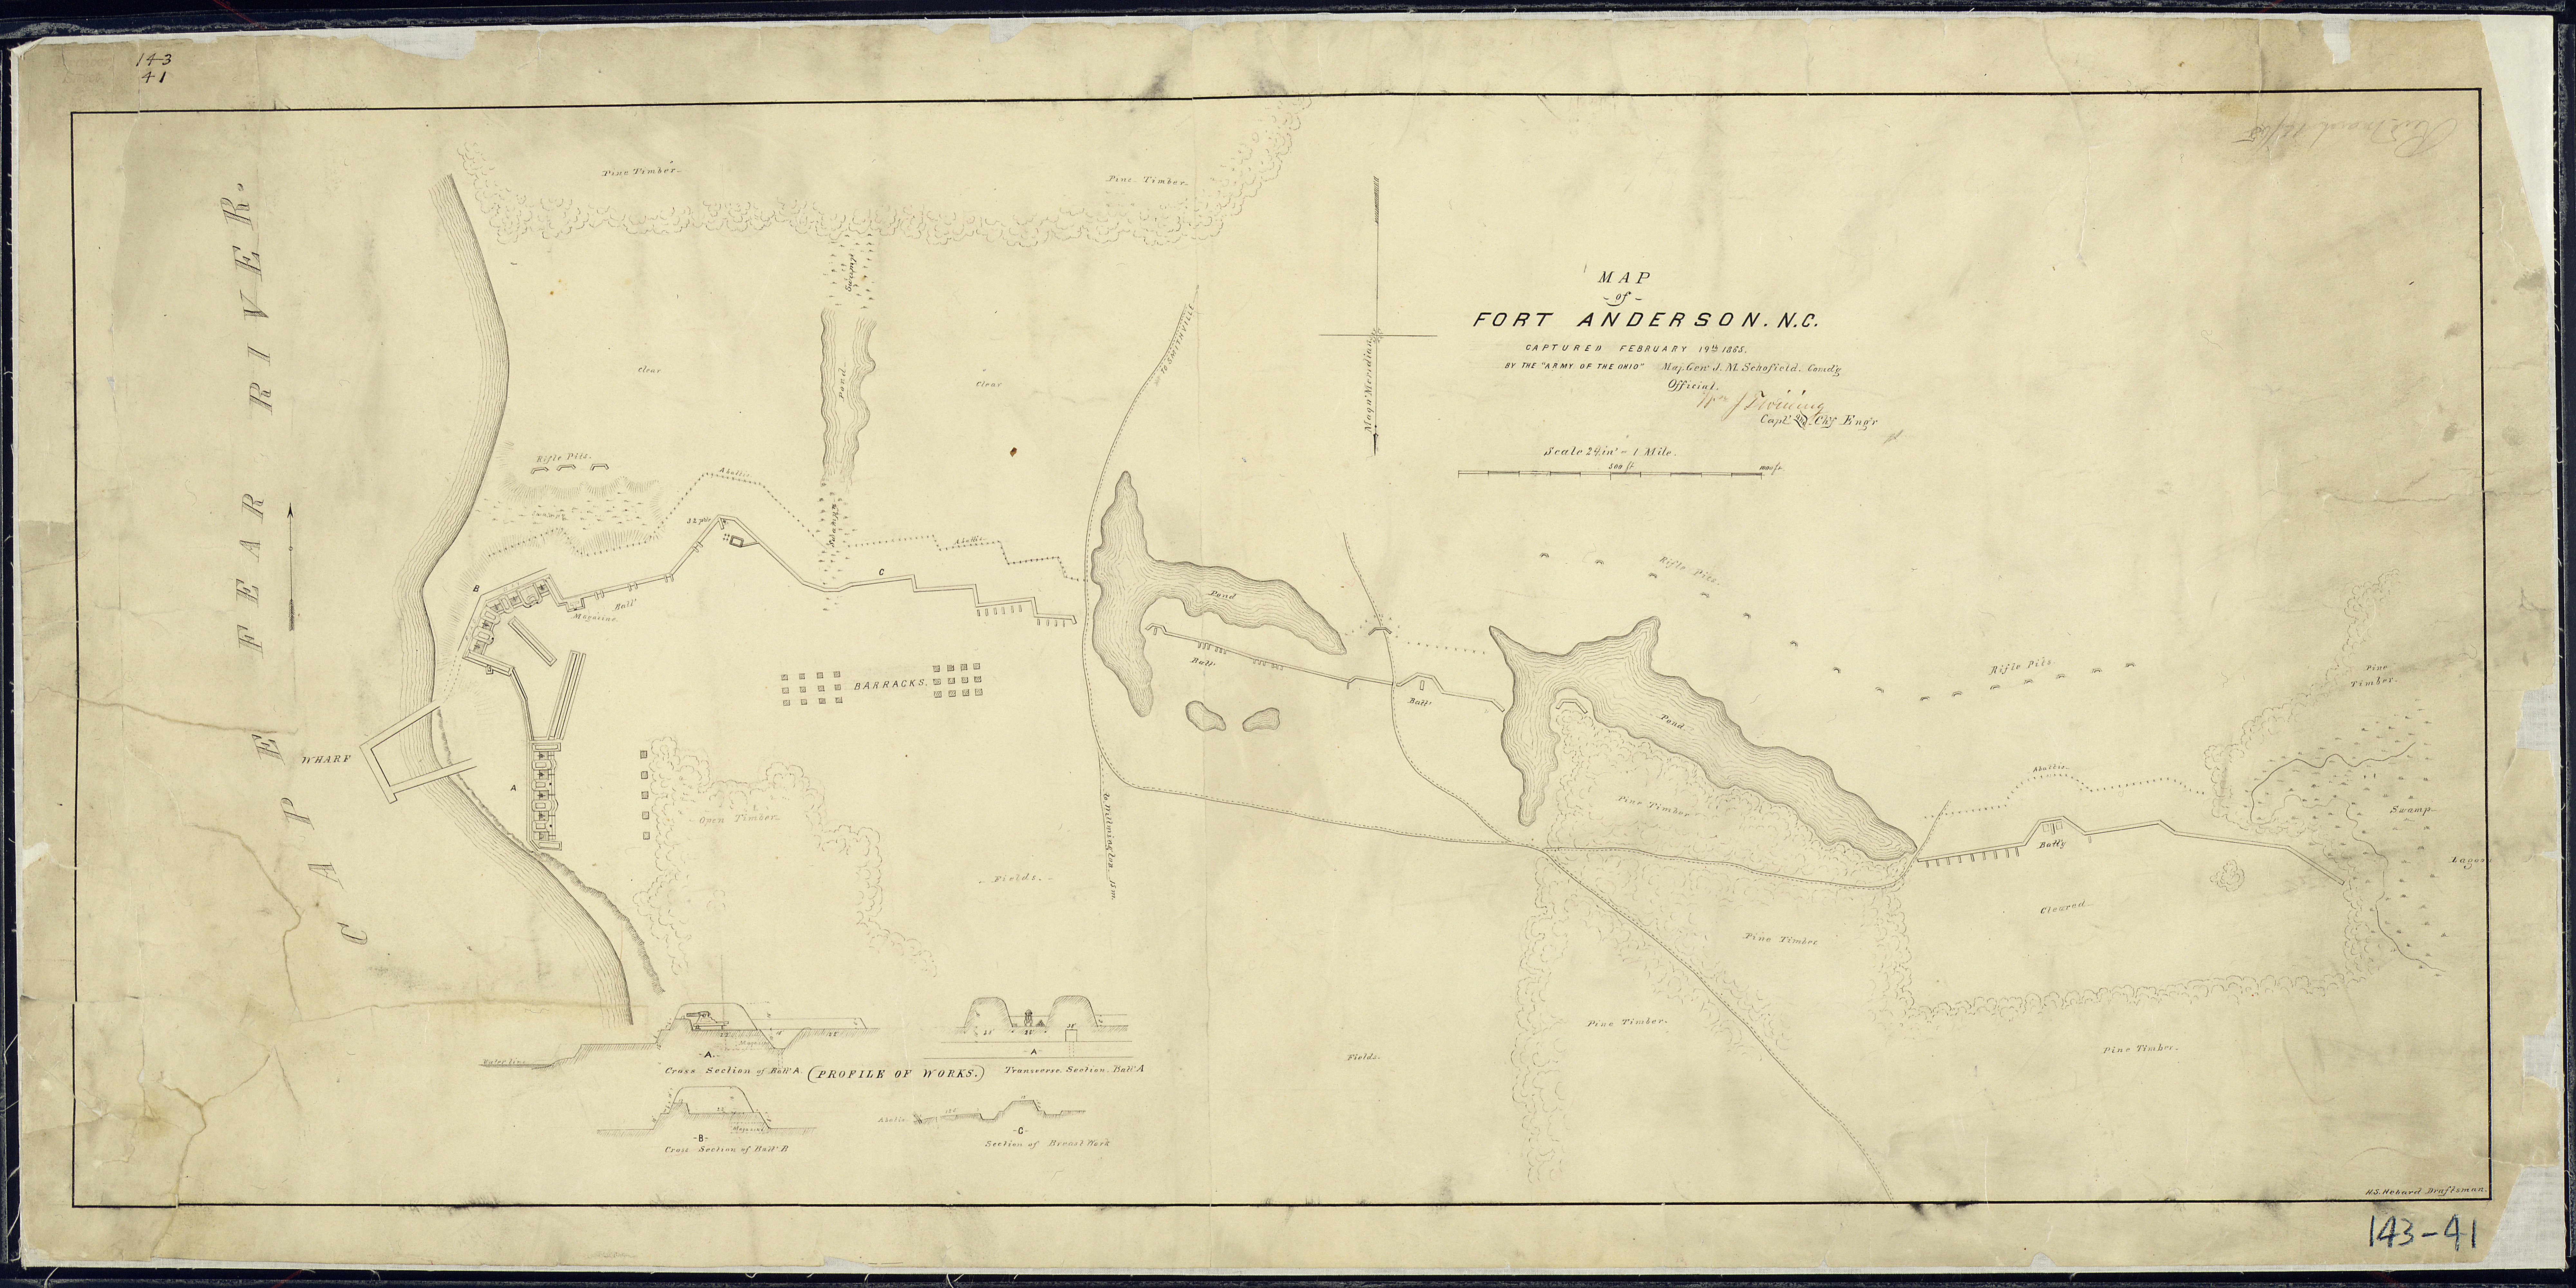 File:Map of Fort Anderson, N.C., captured February 19th, 1865, By